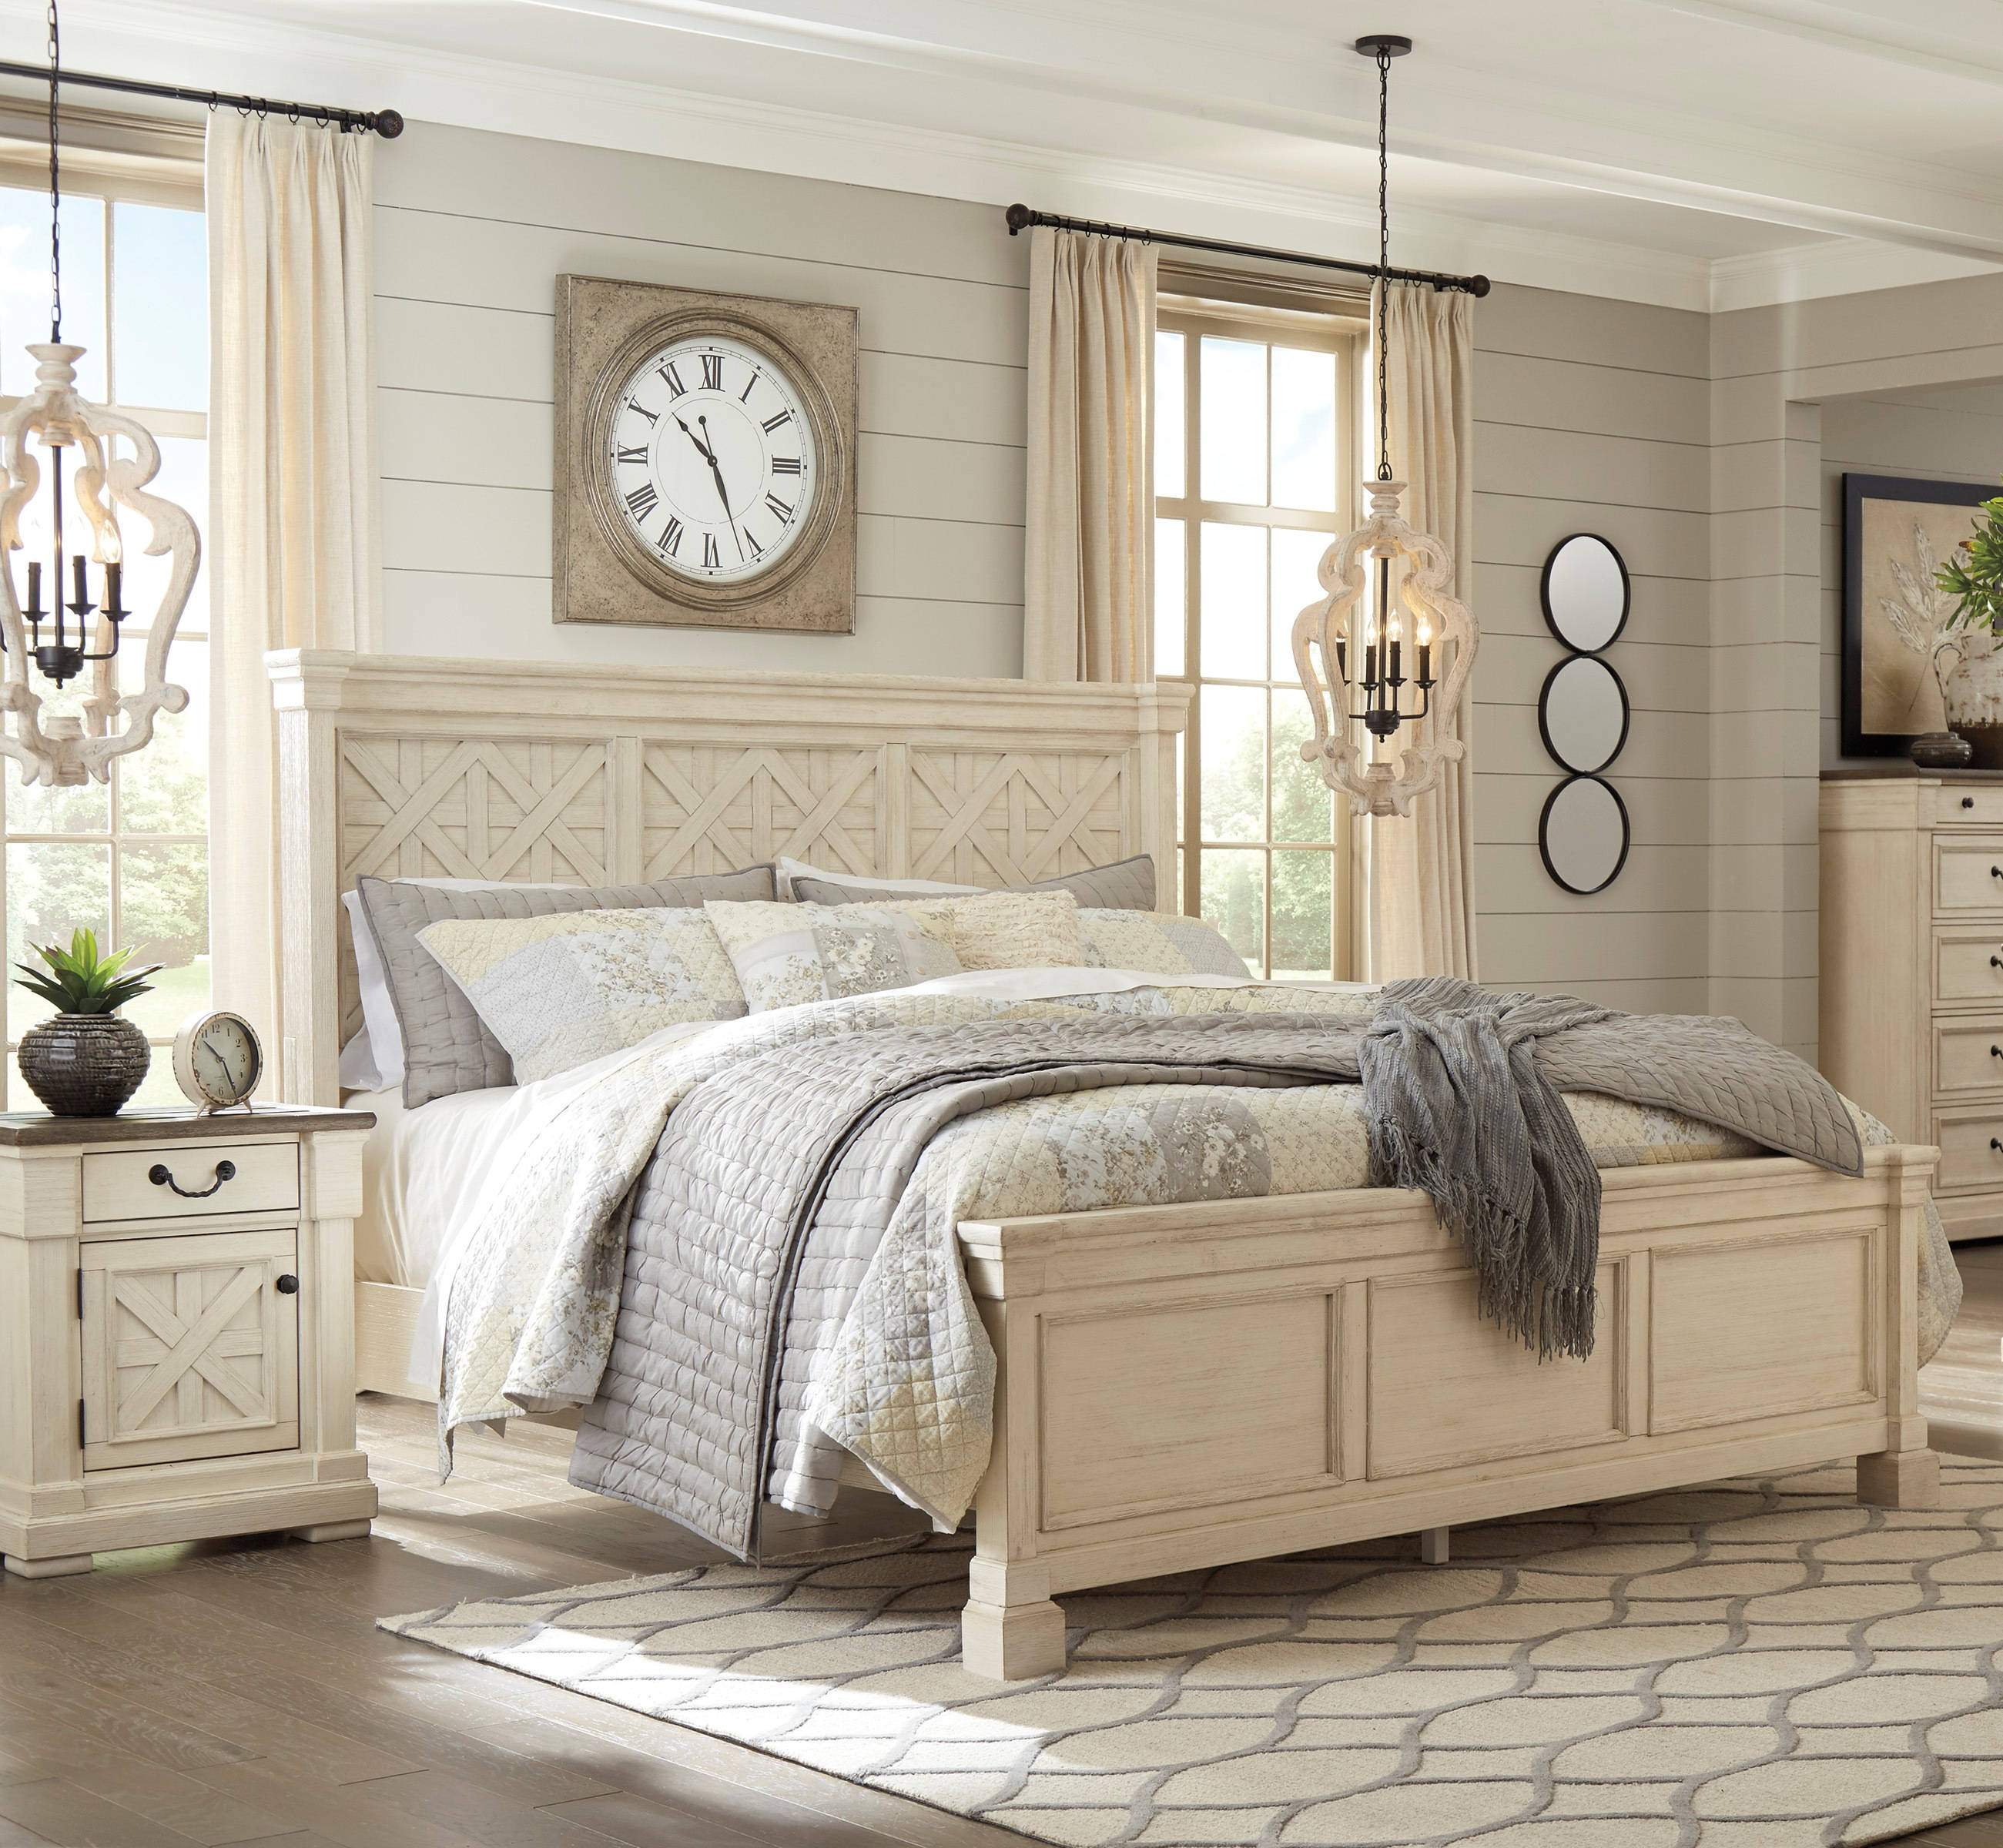 Ashley Furniture Bolanburg White 2pc Bedroom Set With King Bed